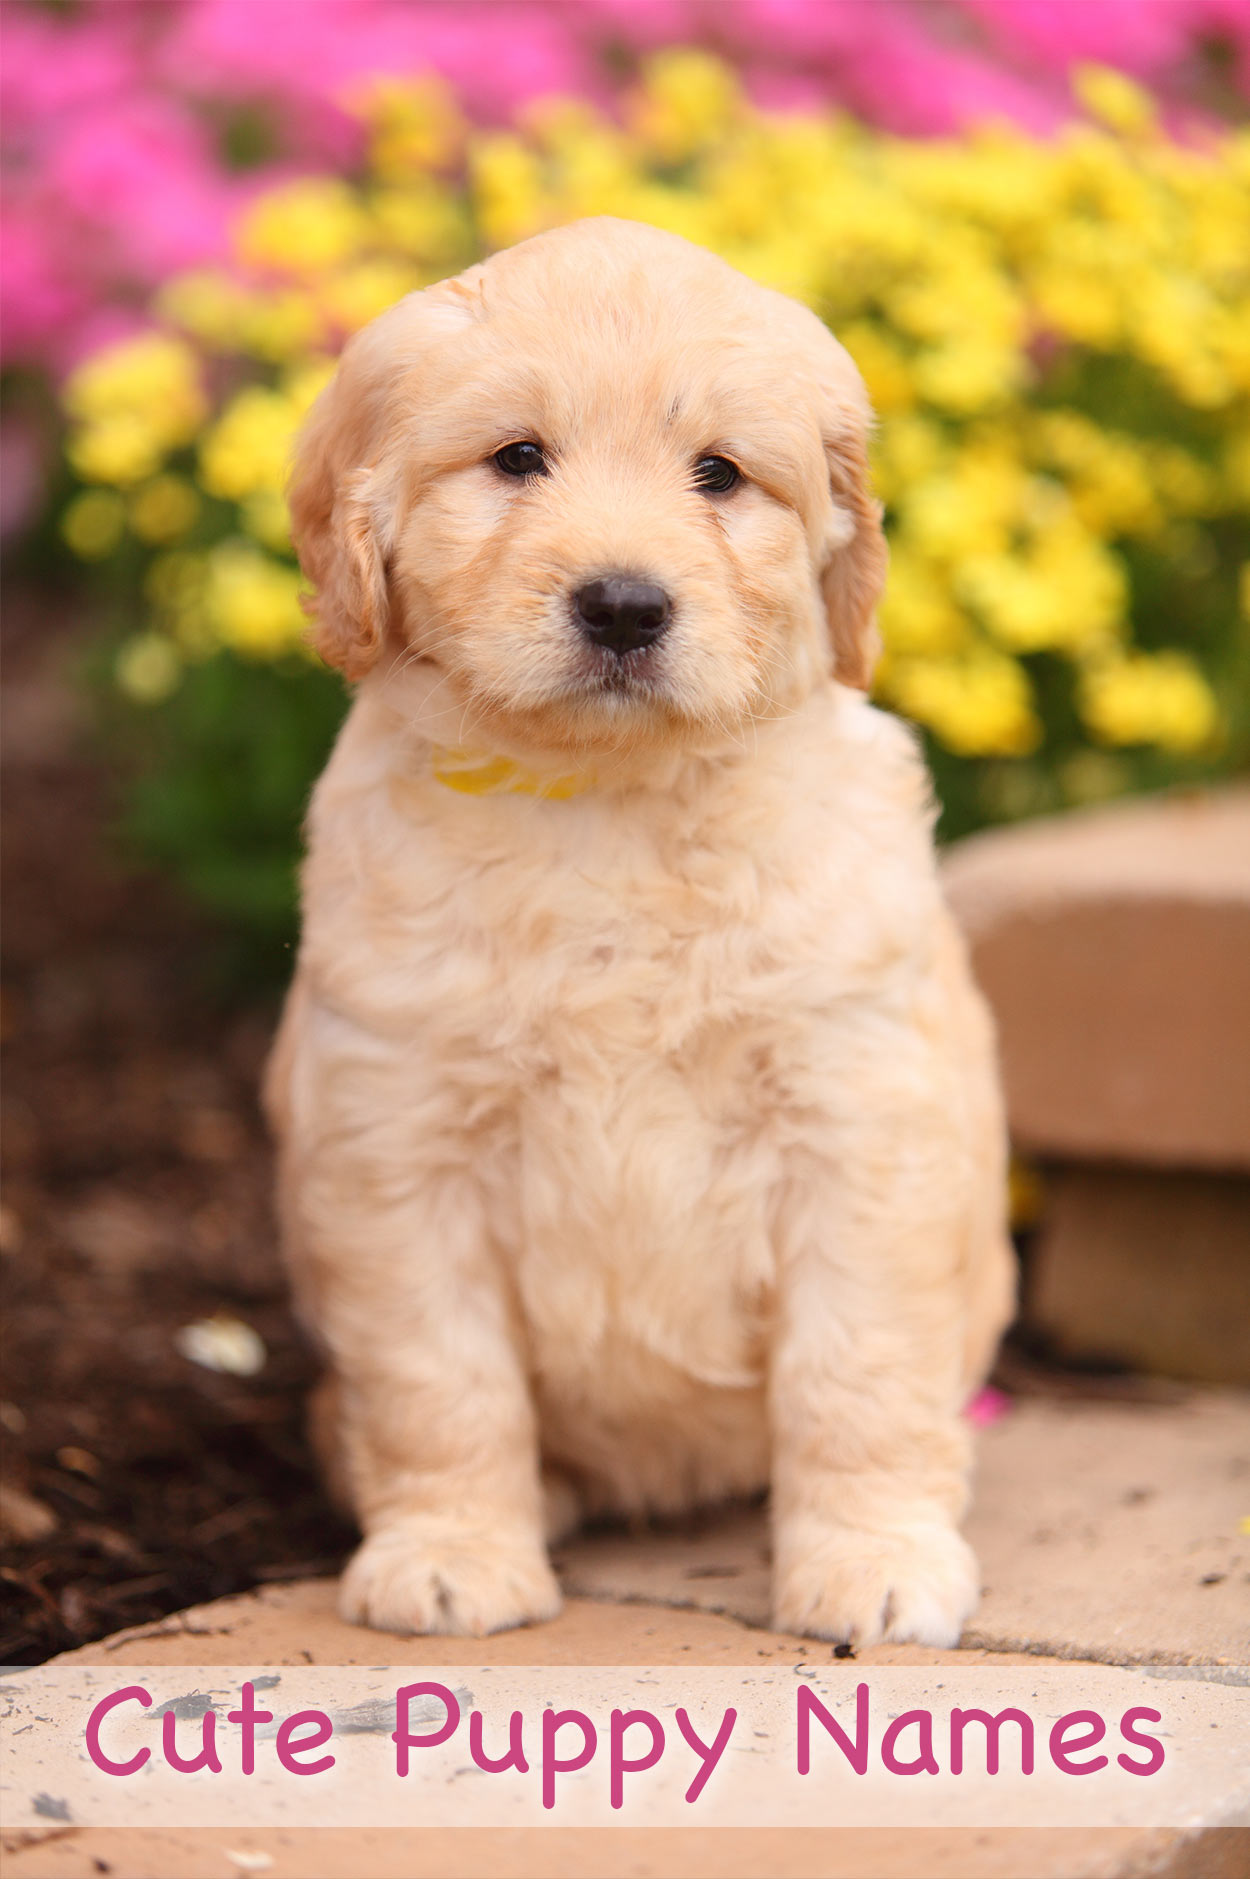 Cute Puppies 17 Pics: Adorable Ideas For Naming Your Puppy